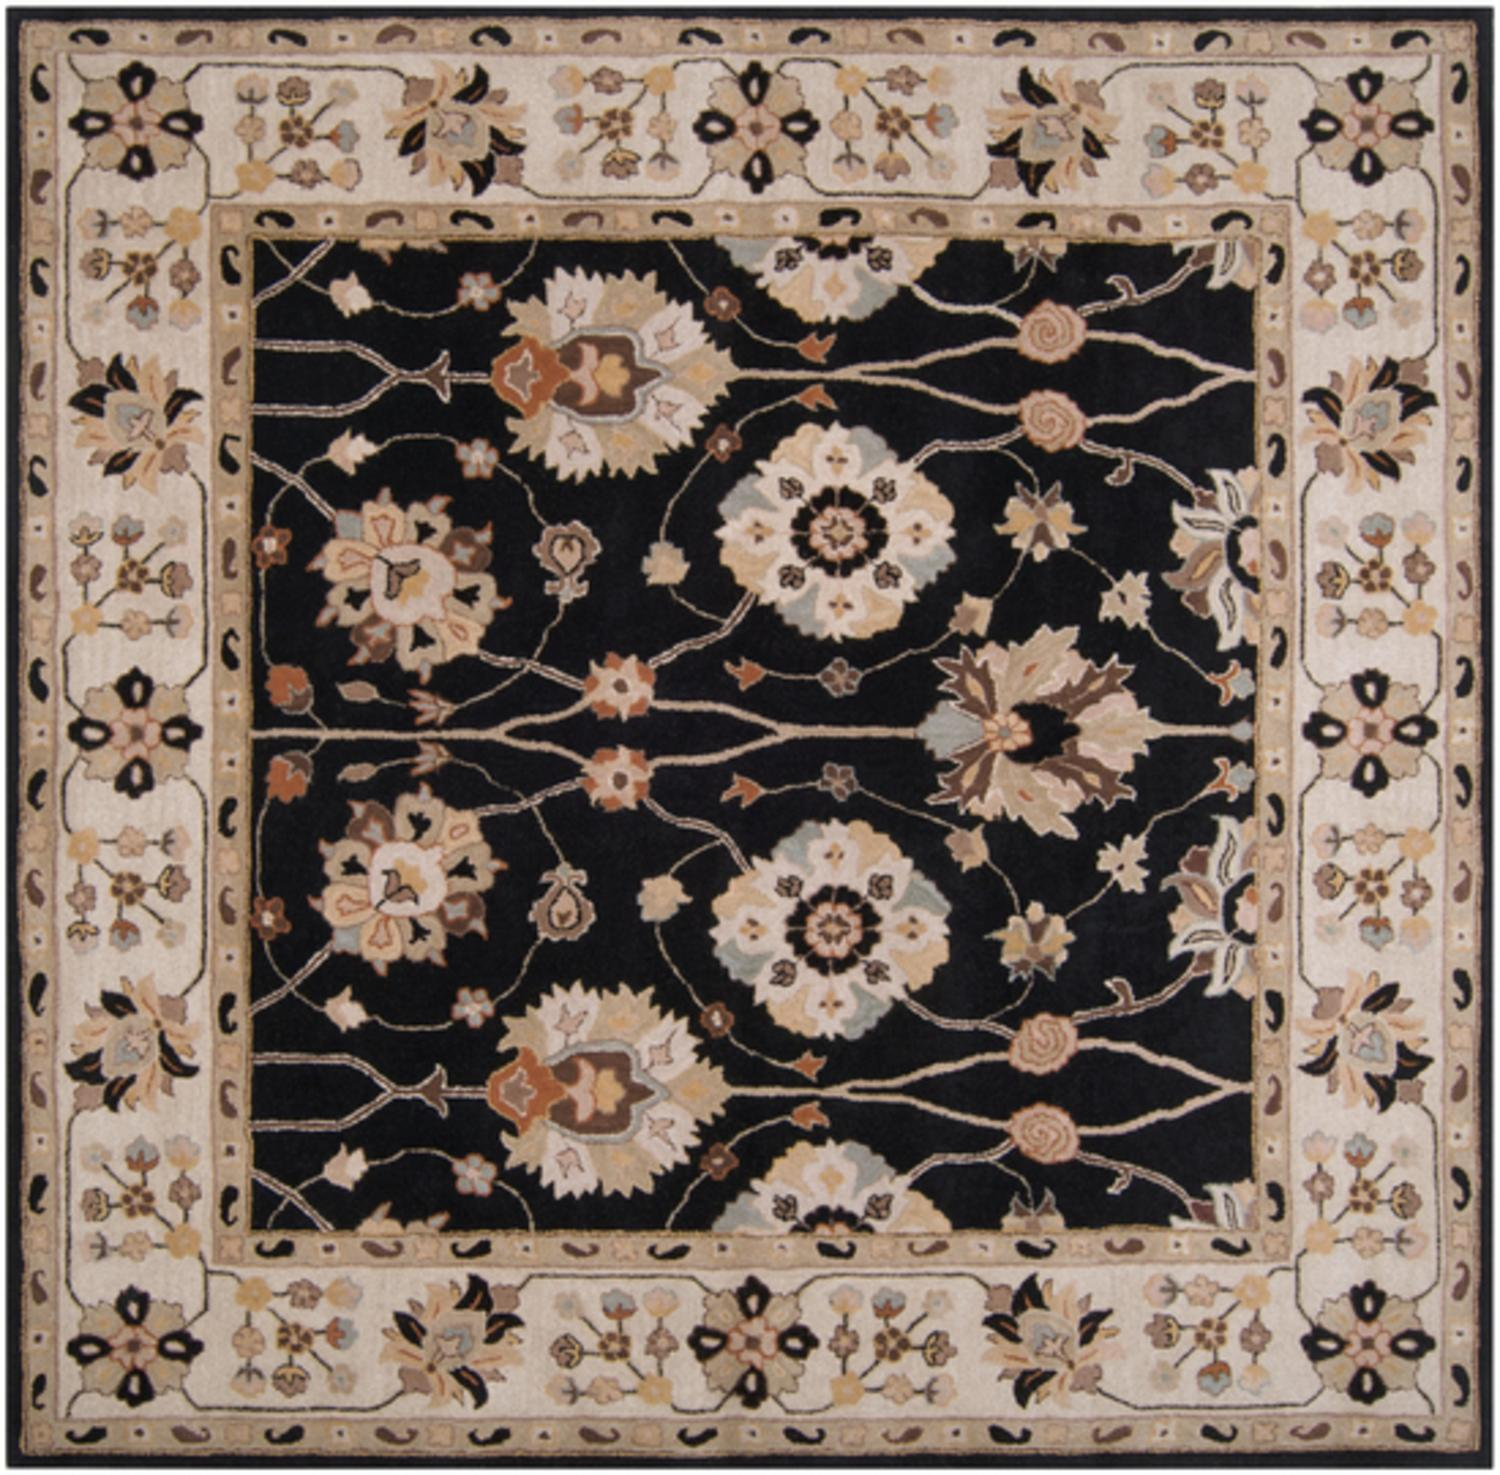 6' x 6' Gregoria Jet Black and Safari Tan Hand Tufted Wool Area Throw Rug